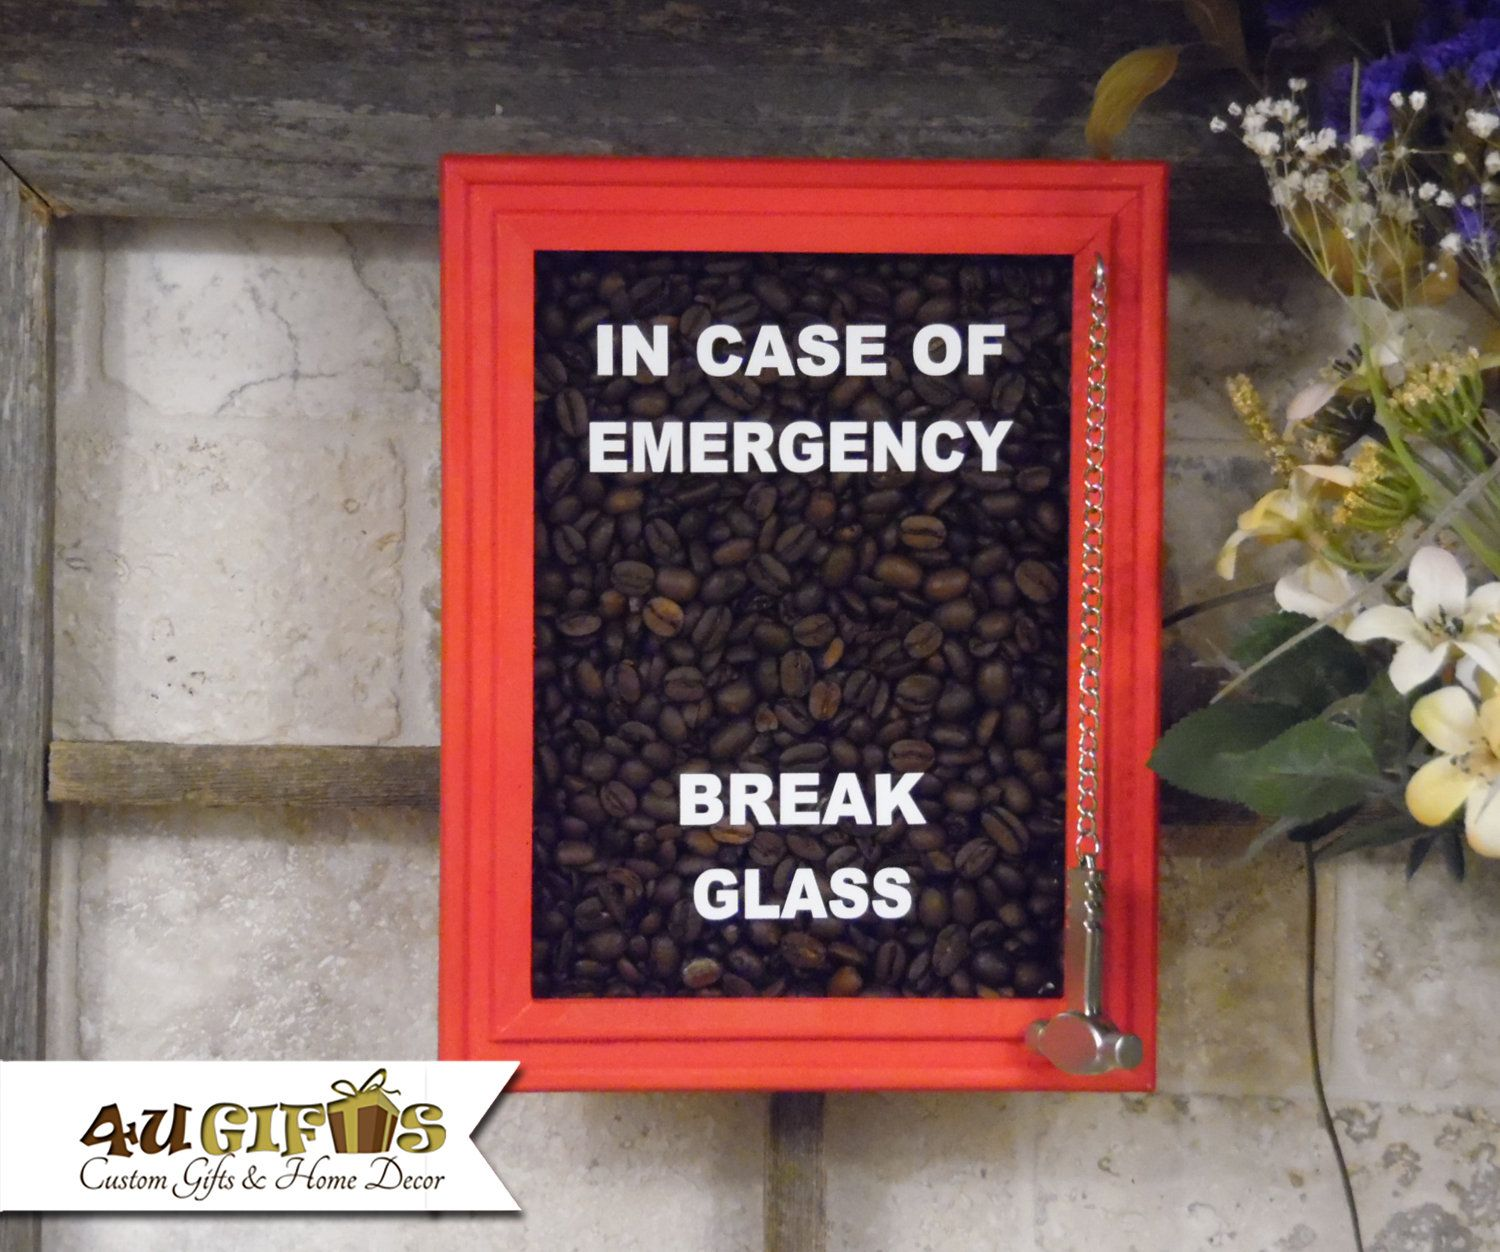 Coffee Beans In Case Of Emergency Break Glass Coffee Lover S Gift Funny Gift Co Worker Gift Gift Exchange In 2020 In Case Of Emergency Gifts For Coworkers Coffee Lover Gifts